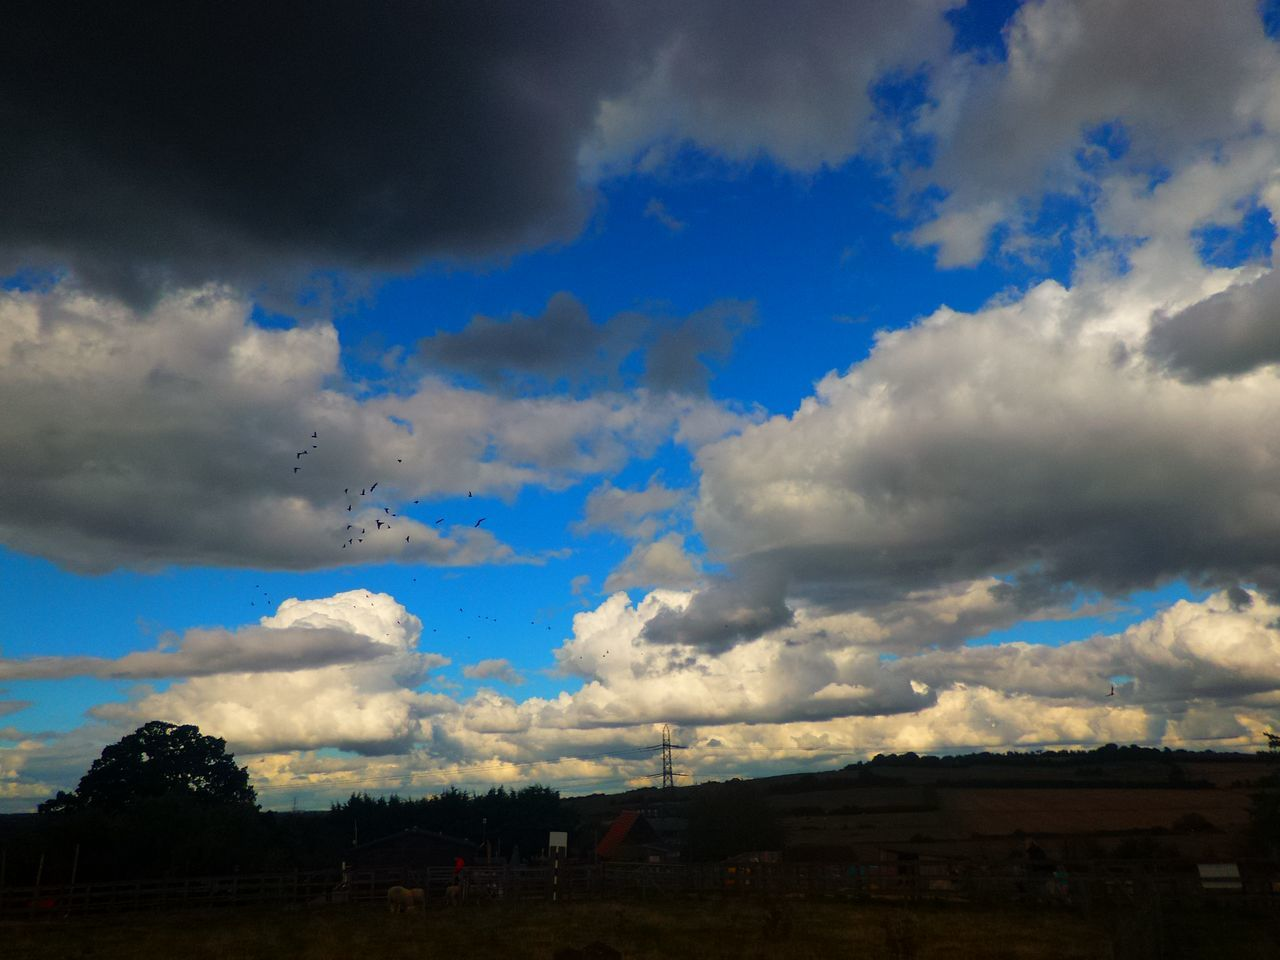 cloud - sky, sky, nature, no people, beauty in nature, scenics, outdoors, day, blue, building exterior, architecture